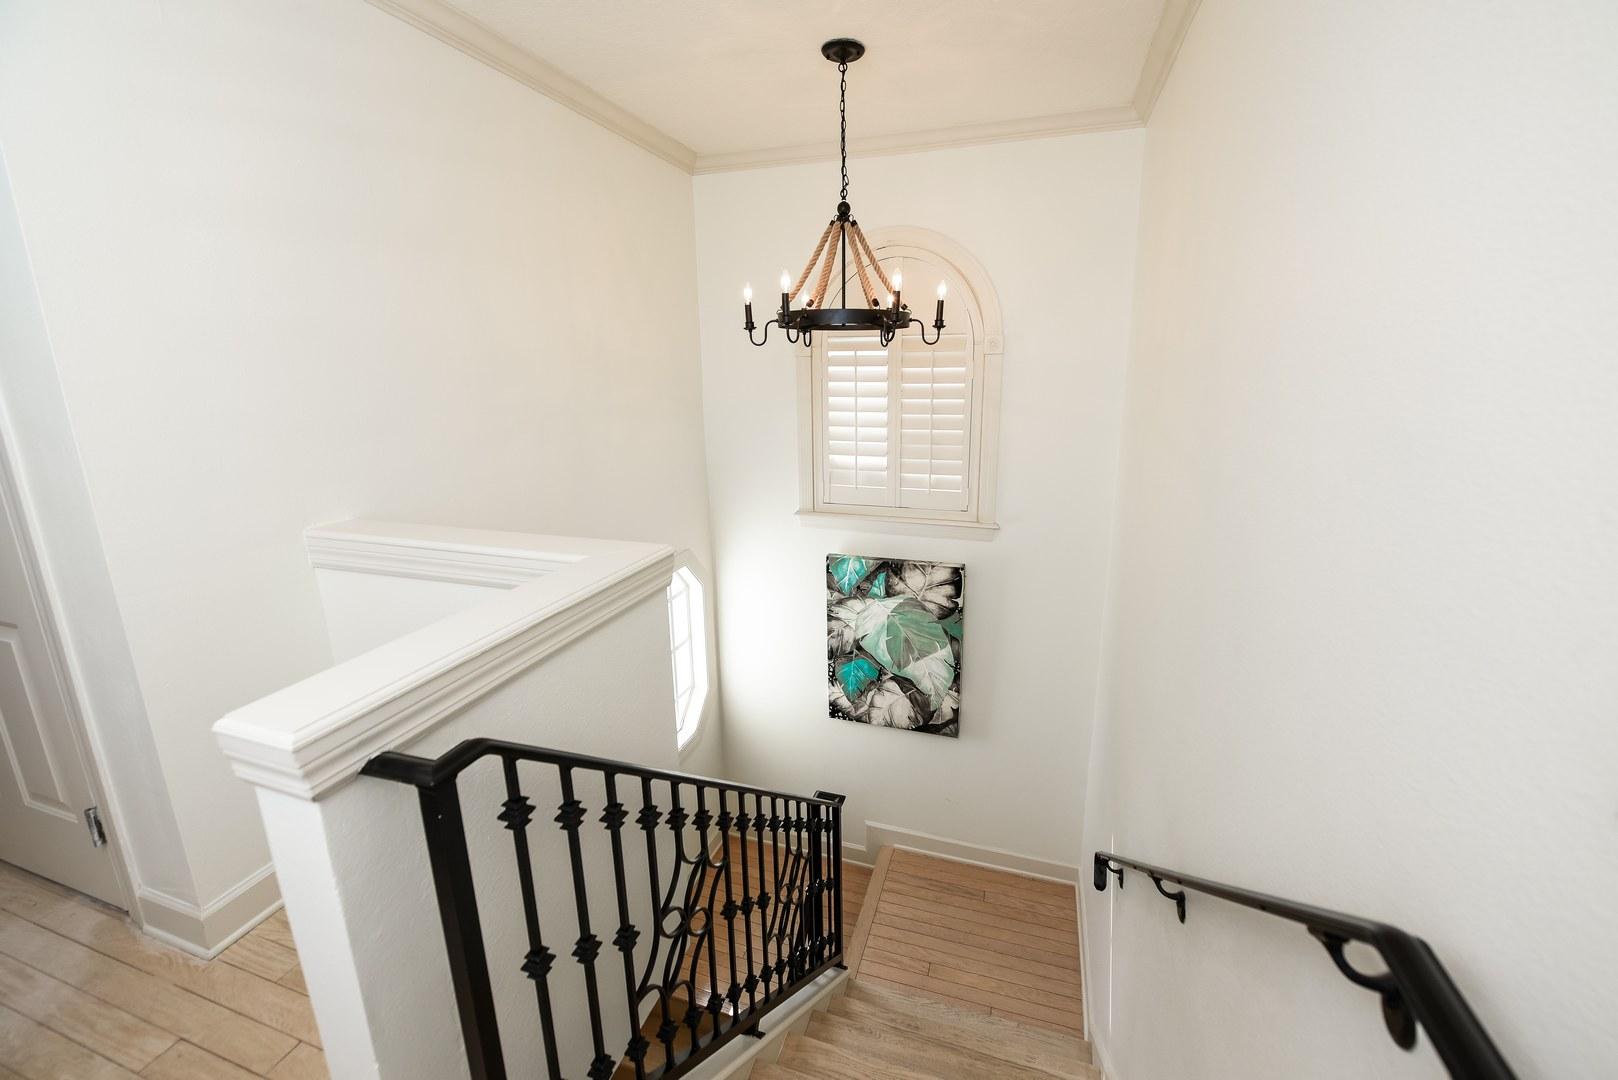 Staircase to Bedrooms and Roof Top Deck